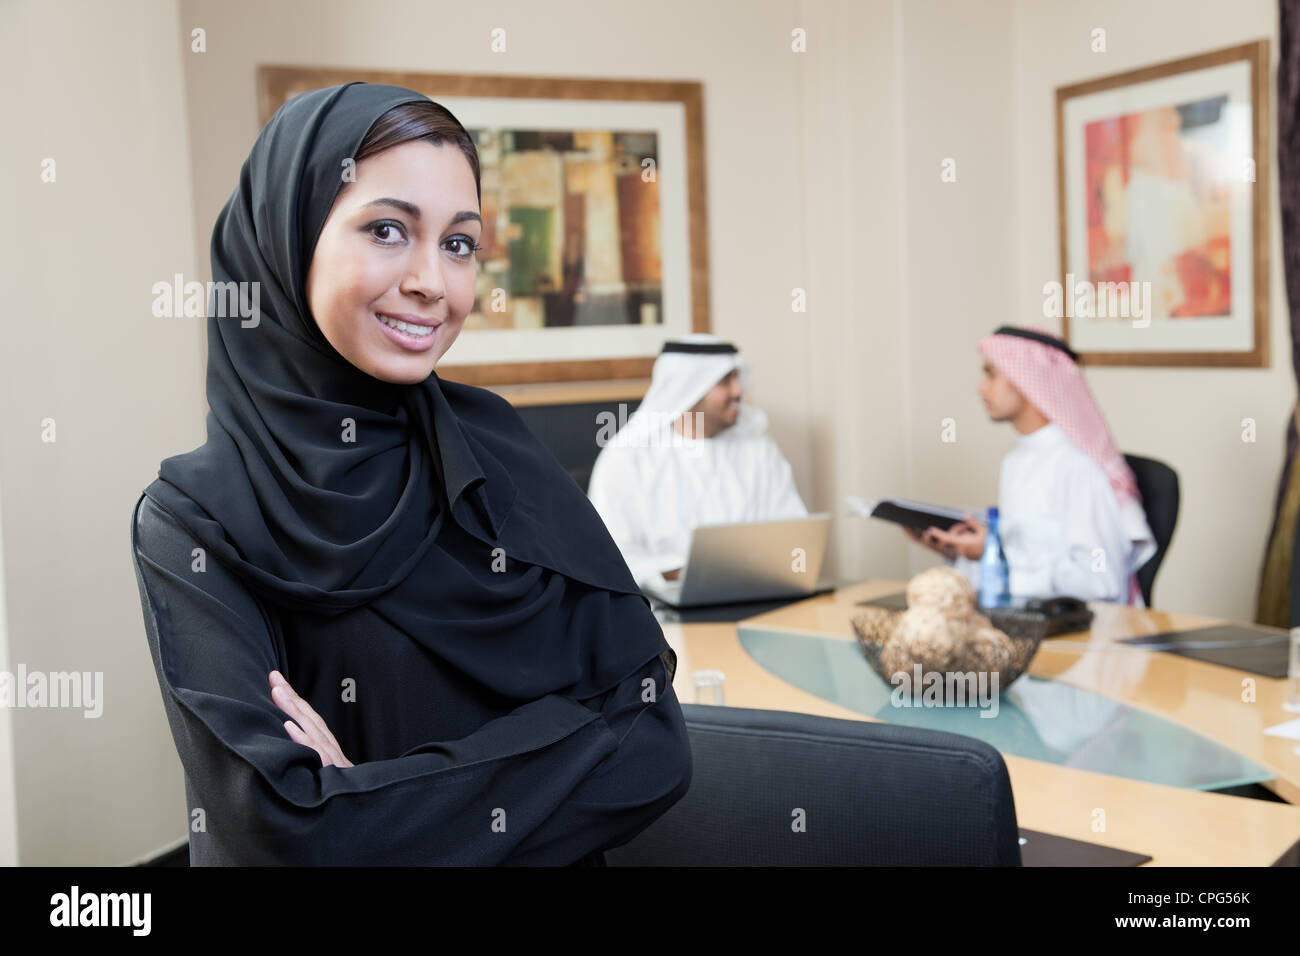 Arab businesswoman arms crossed, standing in meeting. - Stock Image